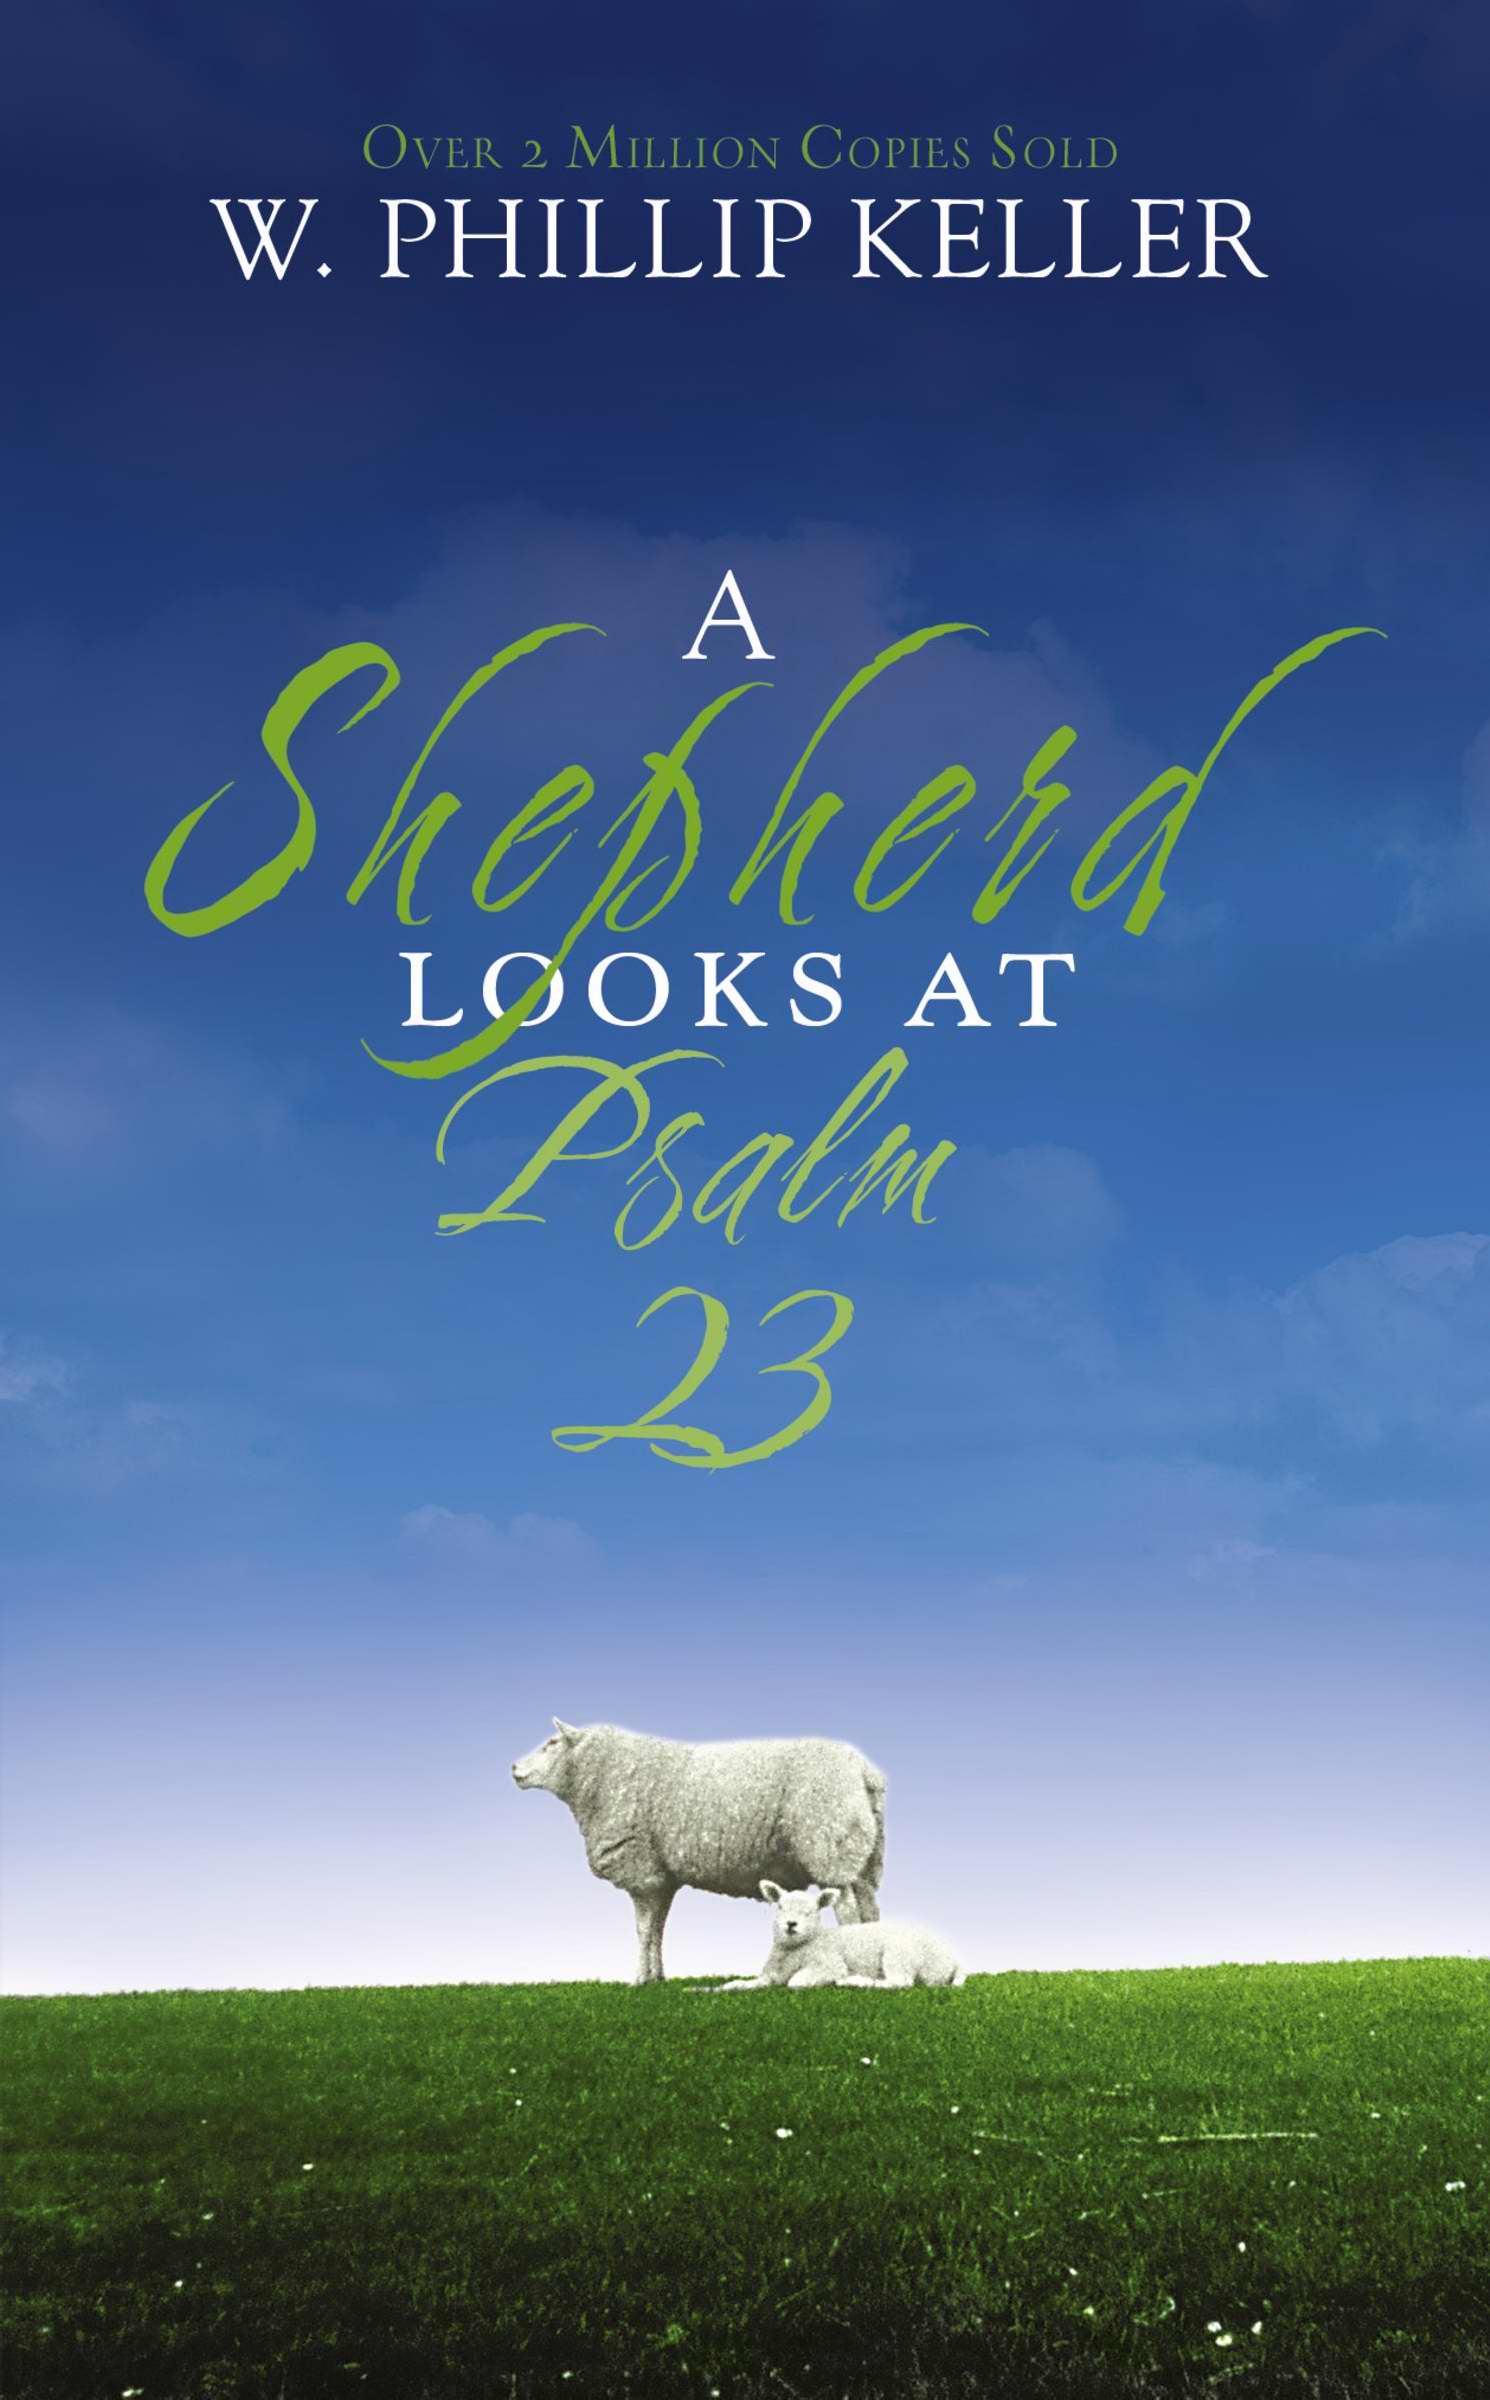 A Shepherd Looks At Psalm 23 (Repack)